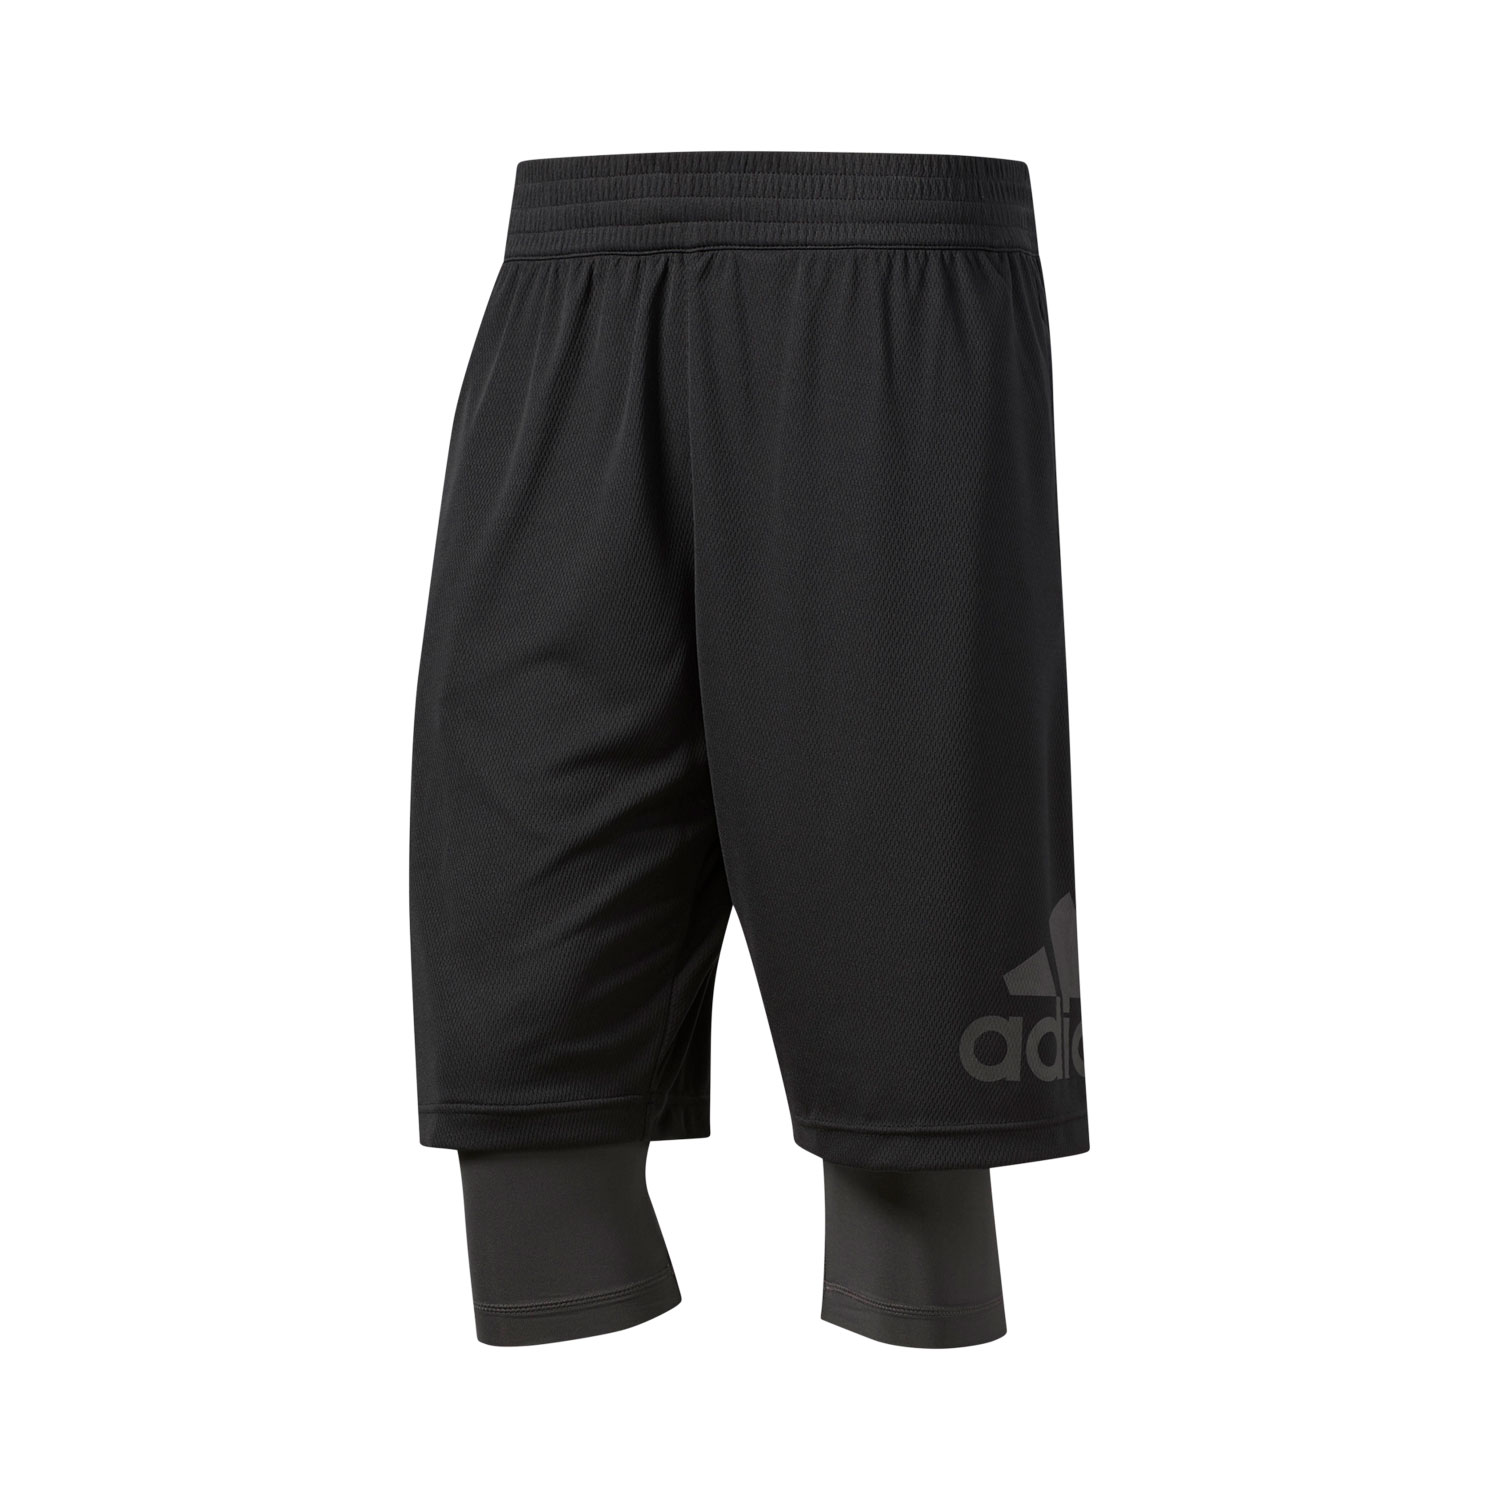 Adidas Dame Foundation 2in1 Herren Basketball Shorts – Bild 1